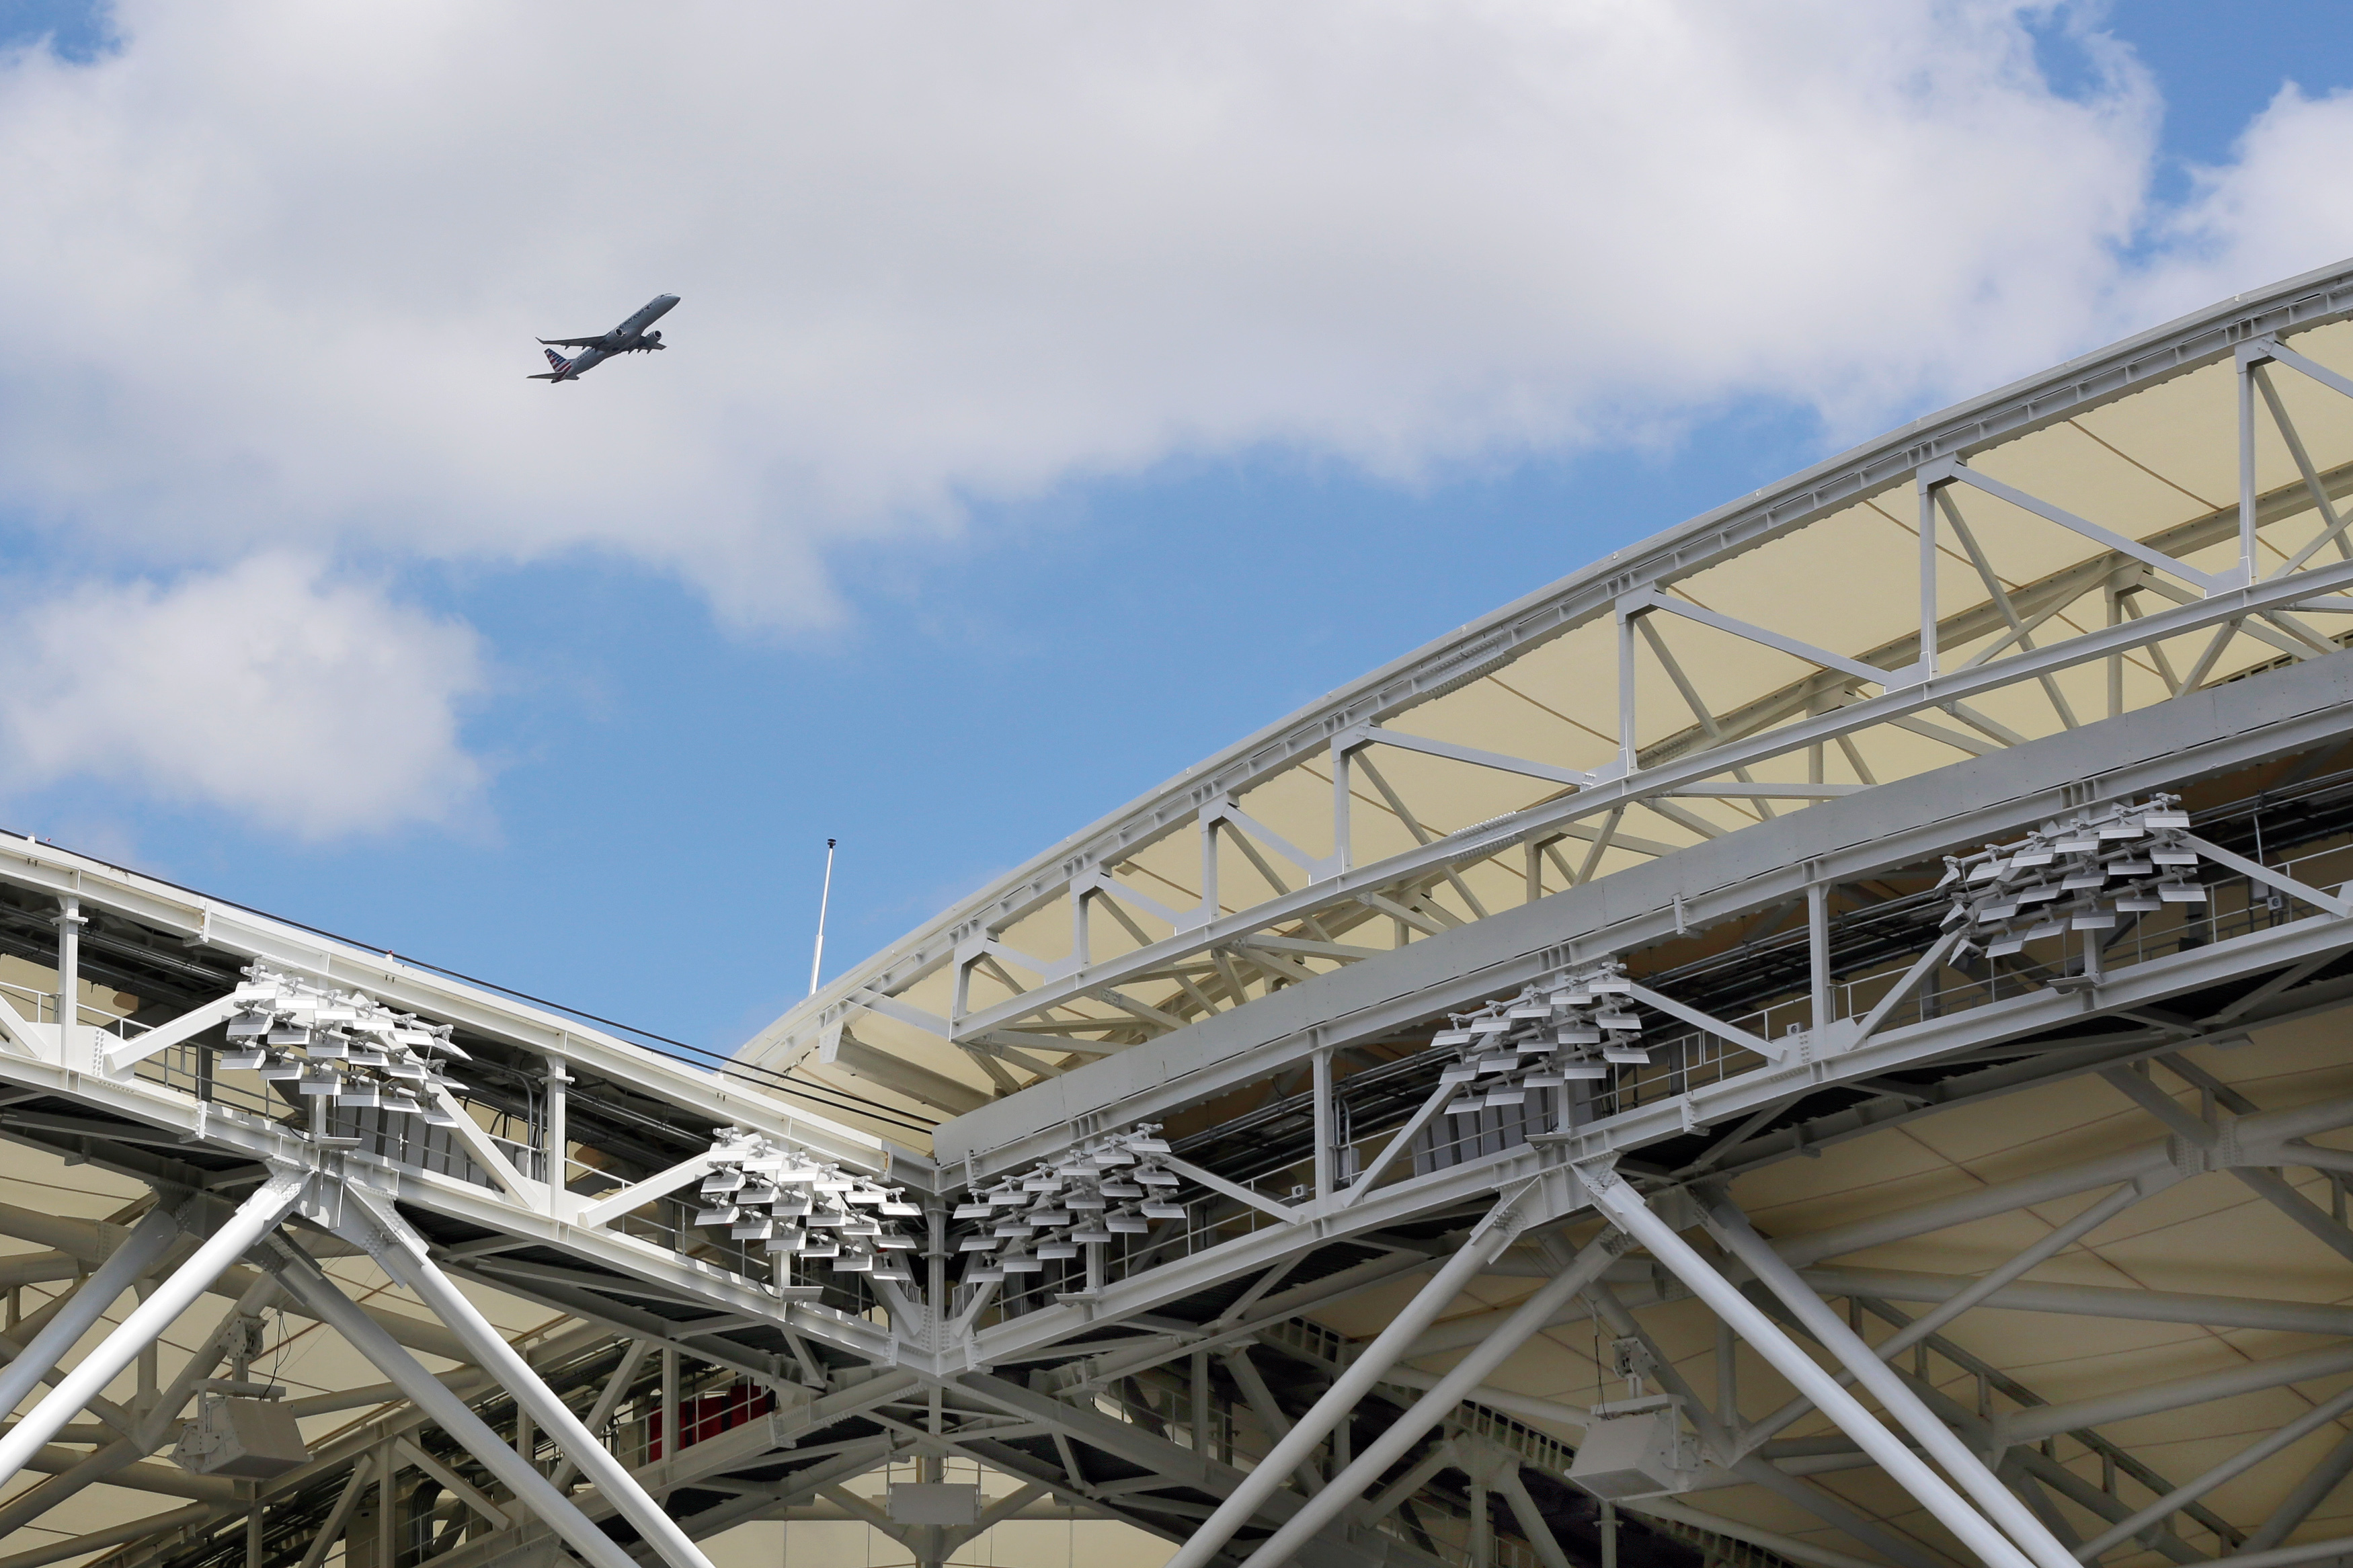 An airplane taking off from LaGuardia Airport is seen through the new retractable roof of Arthur Ashe Stadium, at the Billie Jean King National Tennis Center in the Queens borough of New York, Tuesday, Aug. 2, 2016. Mother Nature will no longer be a probl